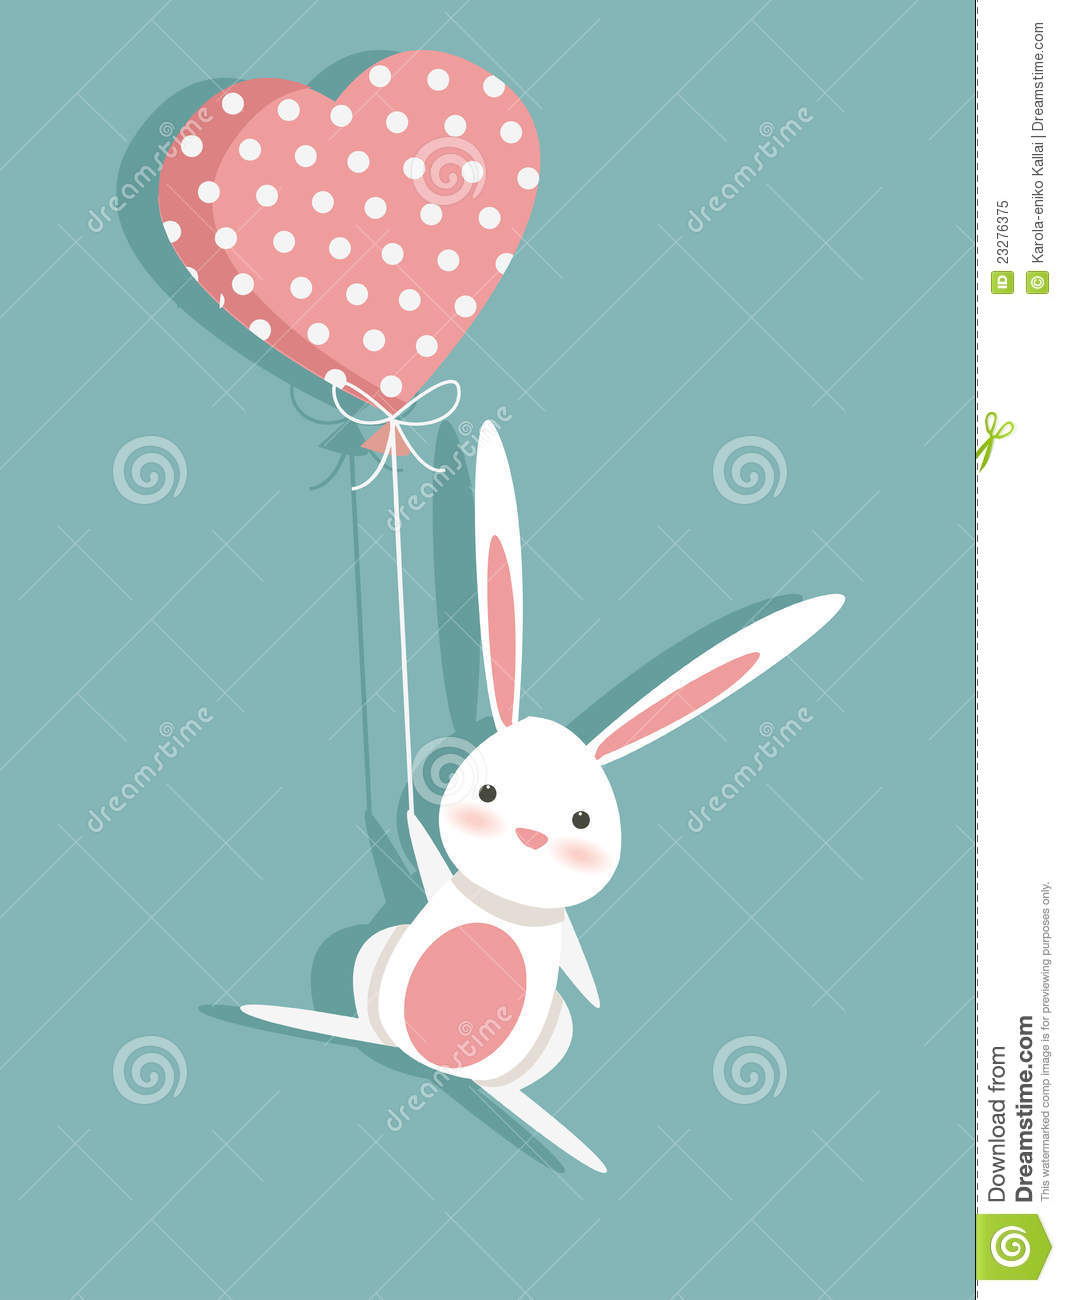 valentine card with a cute bunny stock illustration illustration